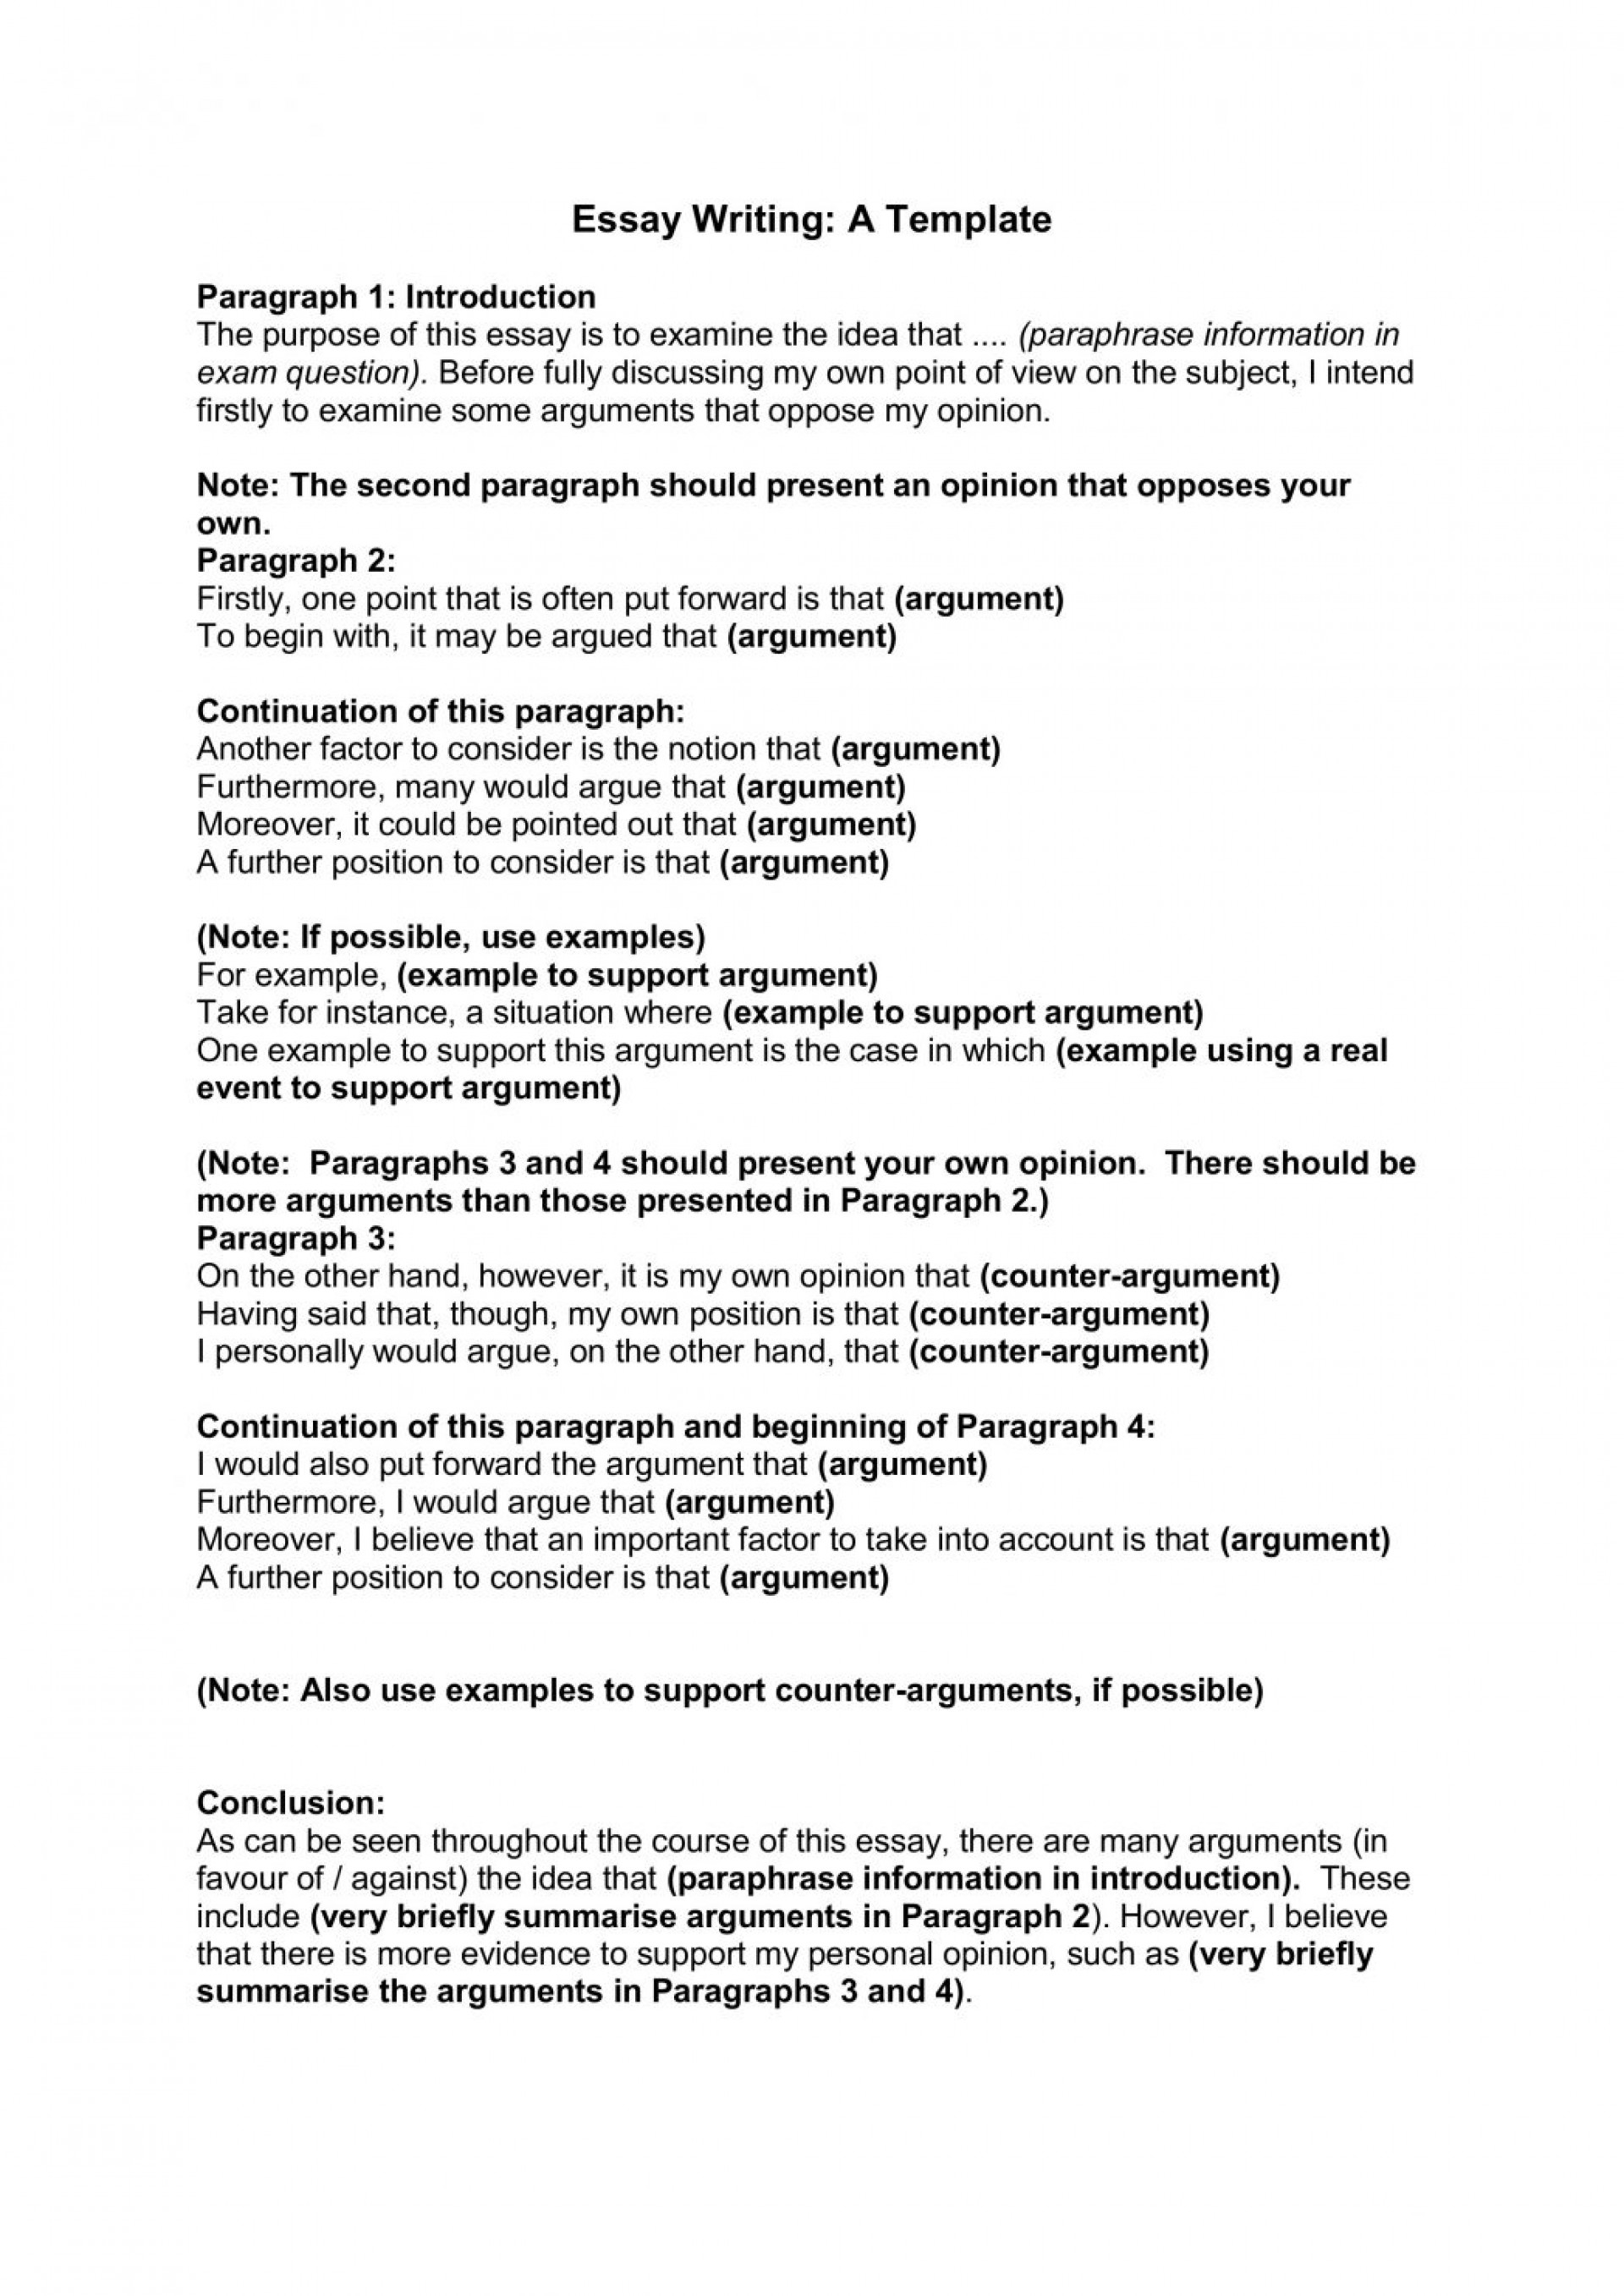 020 How To Begin An Argumentative Essay Writing Essays Cover Letter Thesis Write Ap Lang Template For P Start Conclusion Introduction Statement Step By Pdf Body Paragraph Stirring 1920